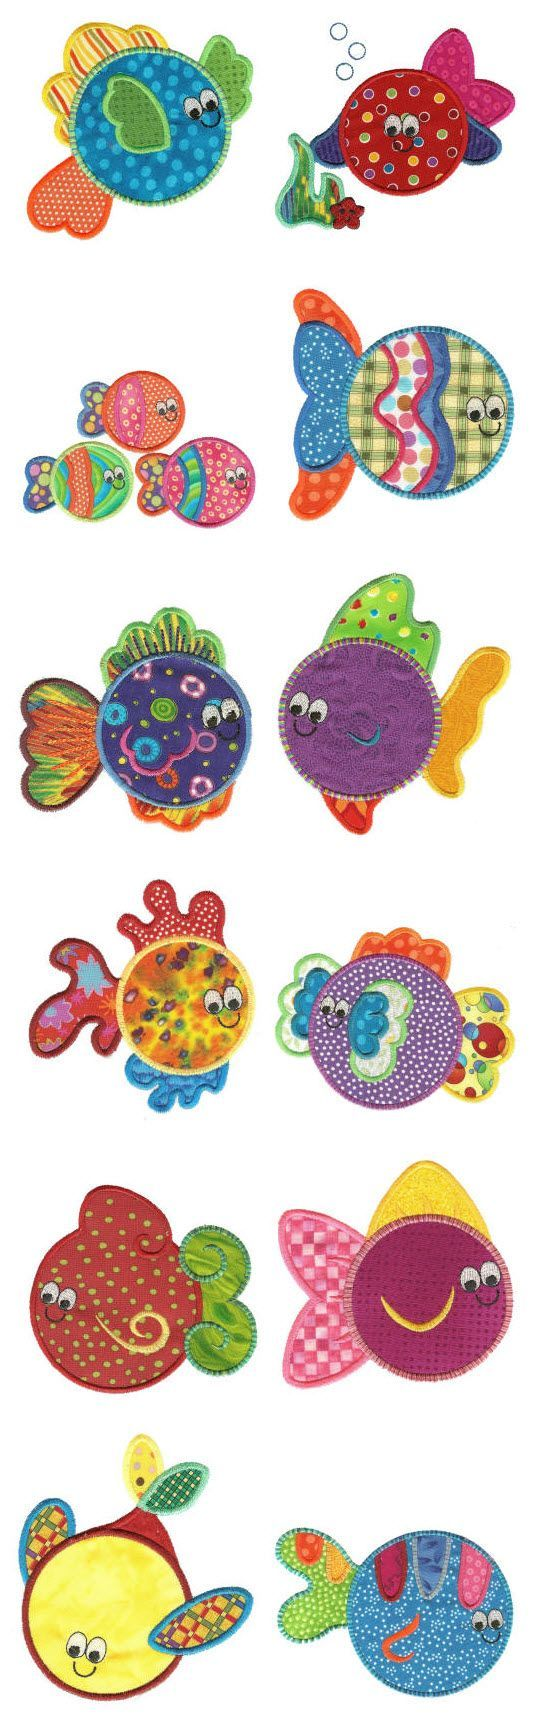 Embroidery | Free Machine Embroidery Designs | Fishies Applique Idea to use gelli papers!: